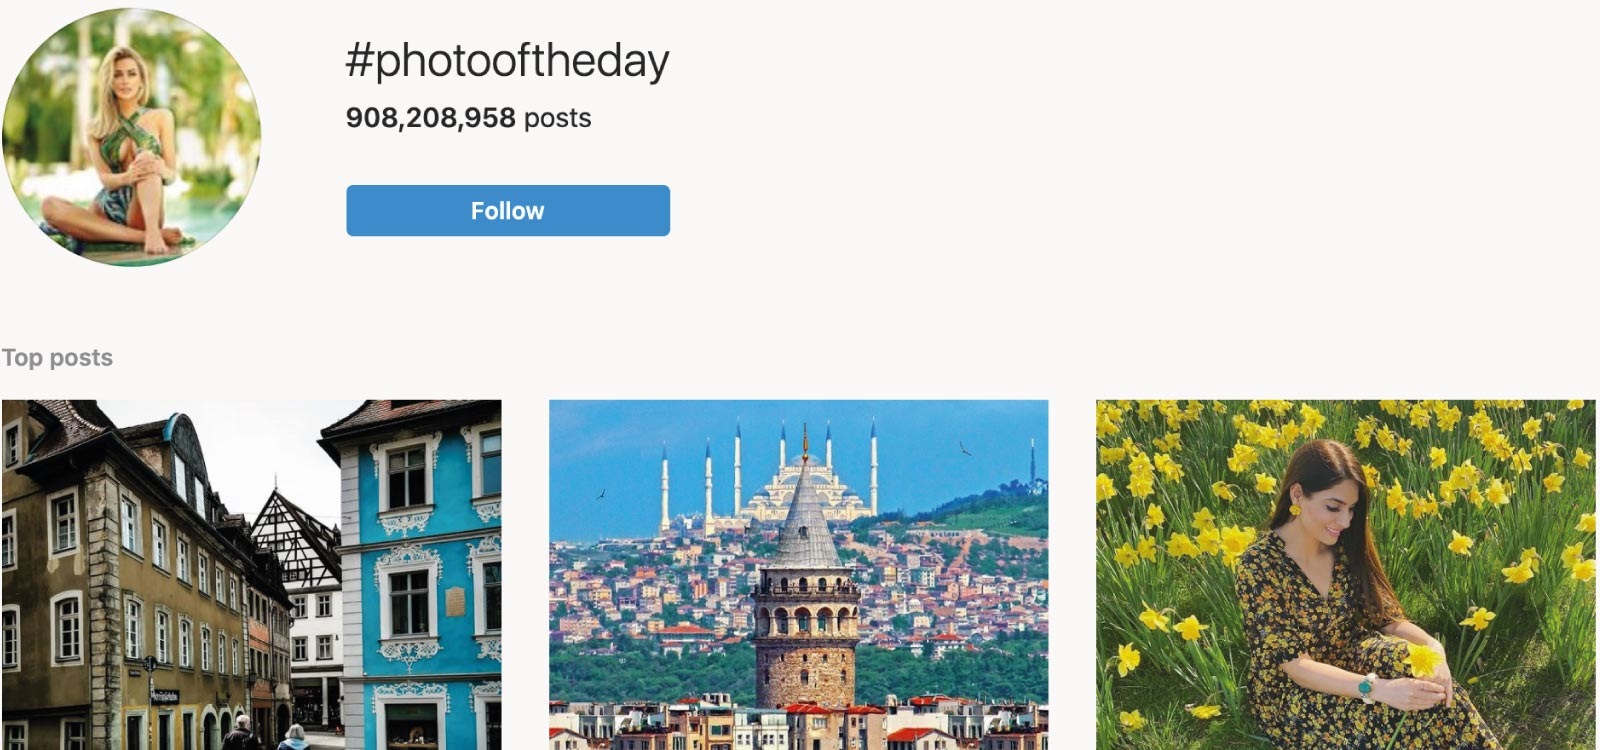 Instagram Statistics and Facts - Hashtags